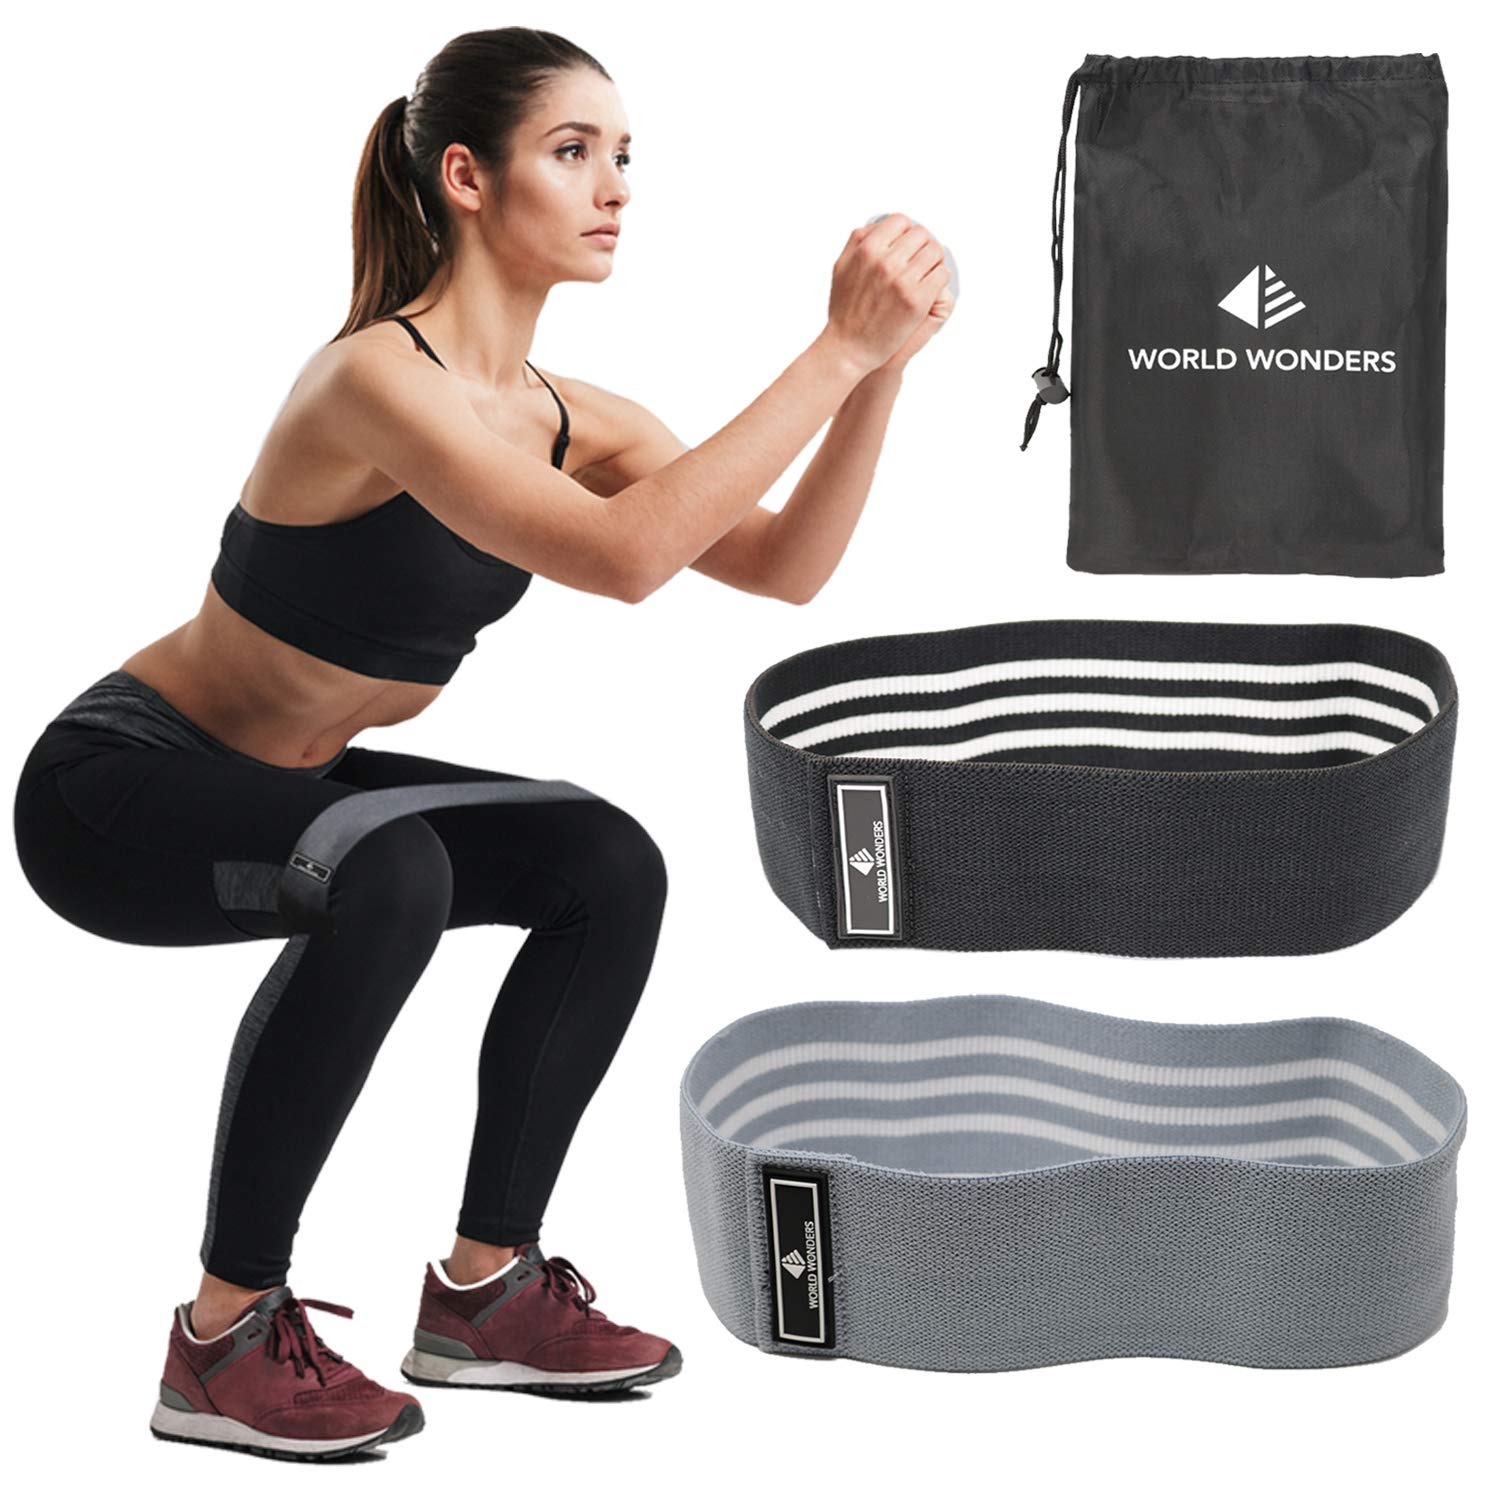 World Wonders Hip Circle Resistance Bands (Set of 2) With Carry Bag | Thick Non Slip Band for Mobility, Stretching and Workout Warmups | Loop Bands Ideal for Abductors, Legs and Booty Exercises